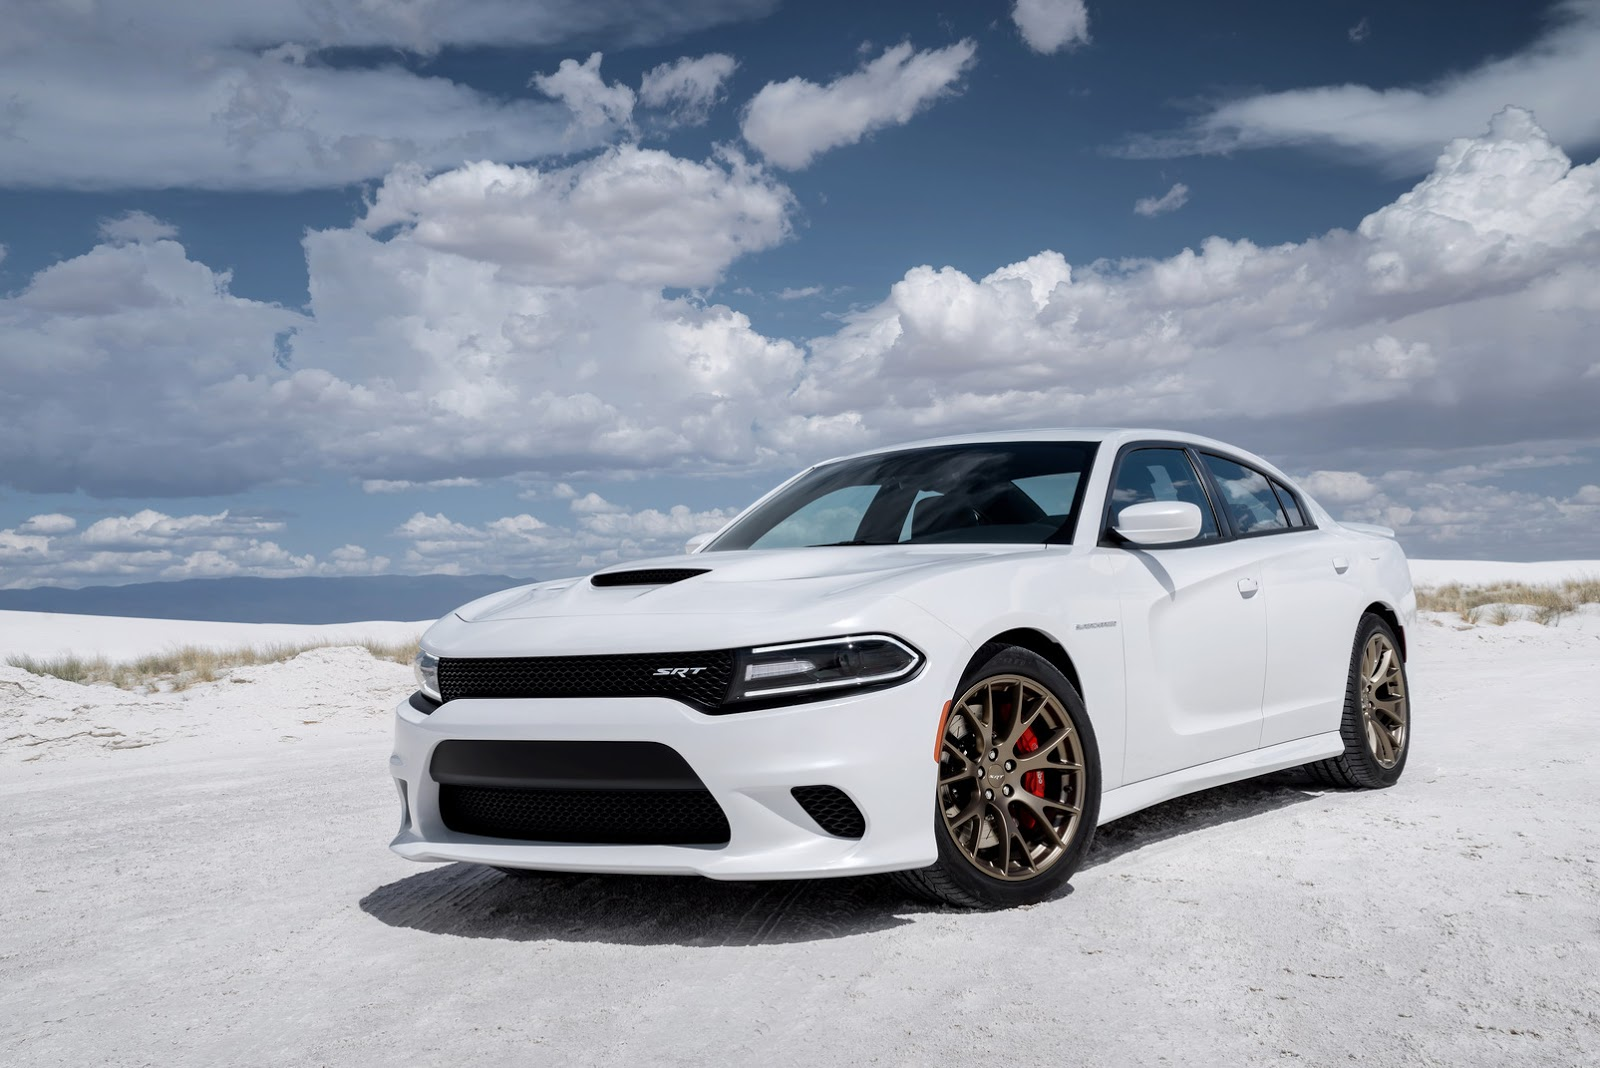 dodge says 2015 charger srt hellcat is the world 39 s fastest production sedan 142 pics carscoops